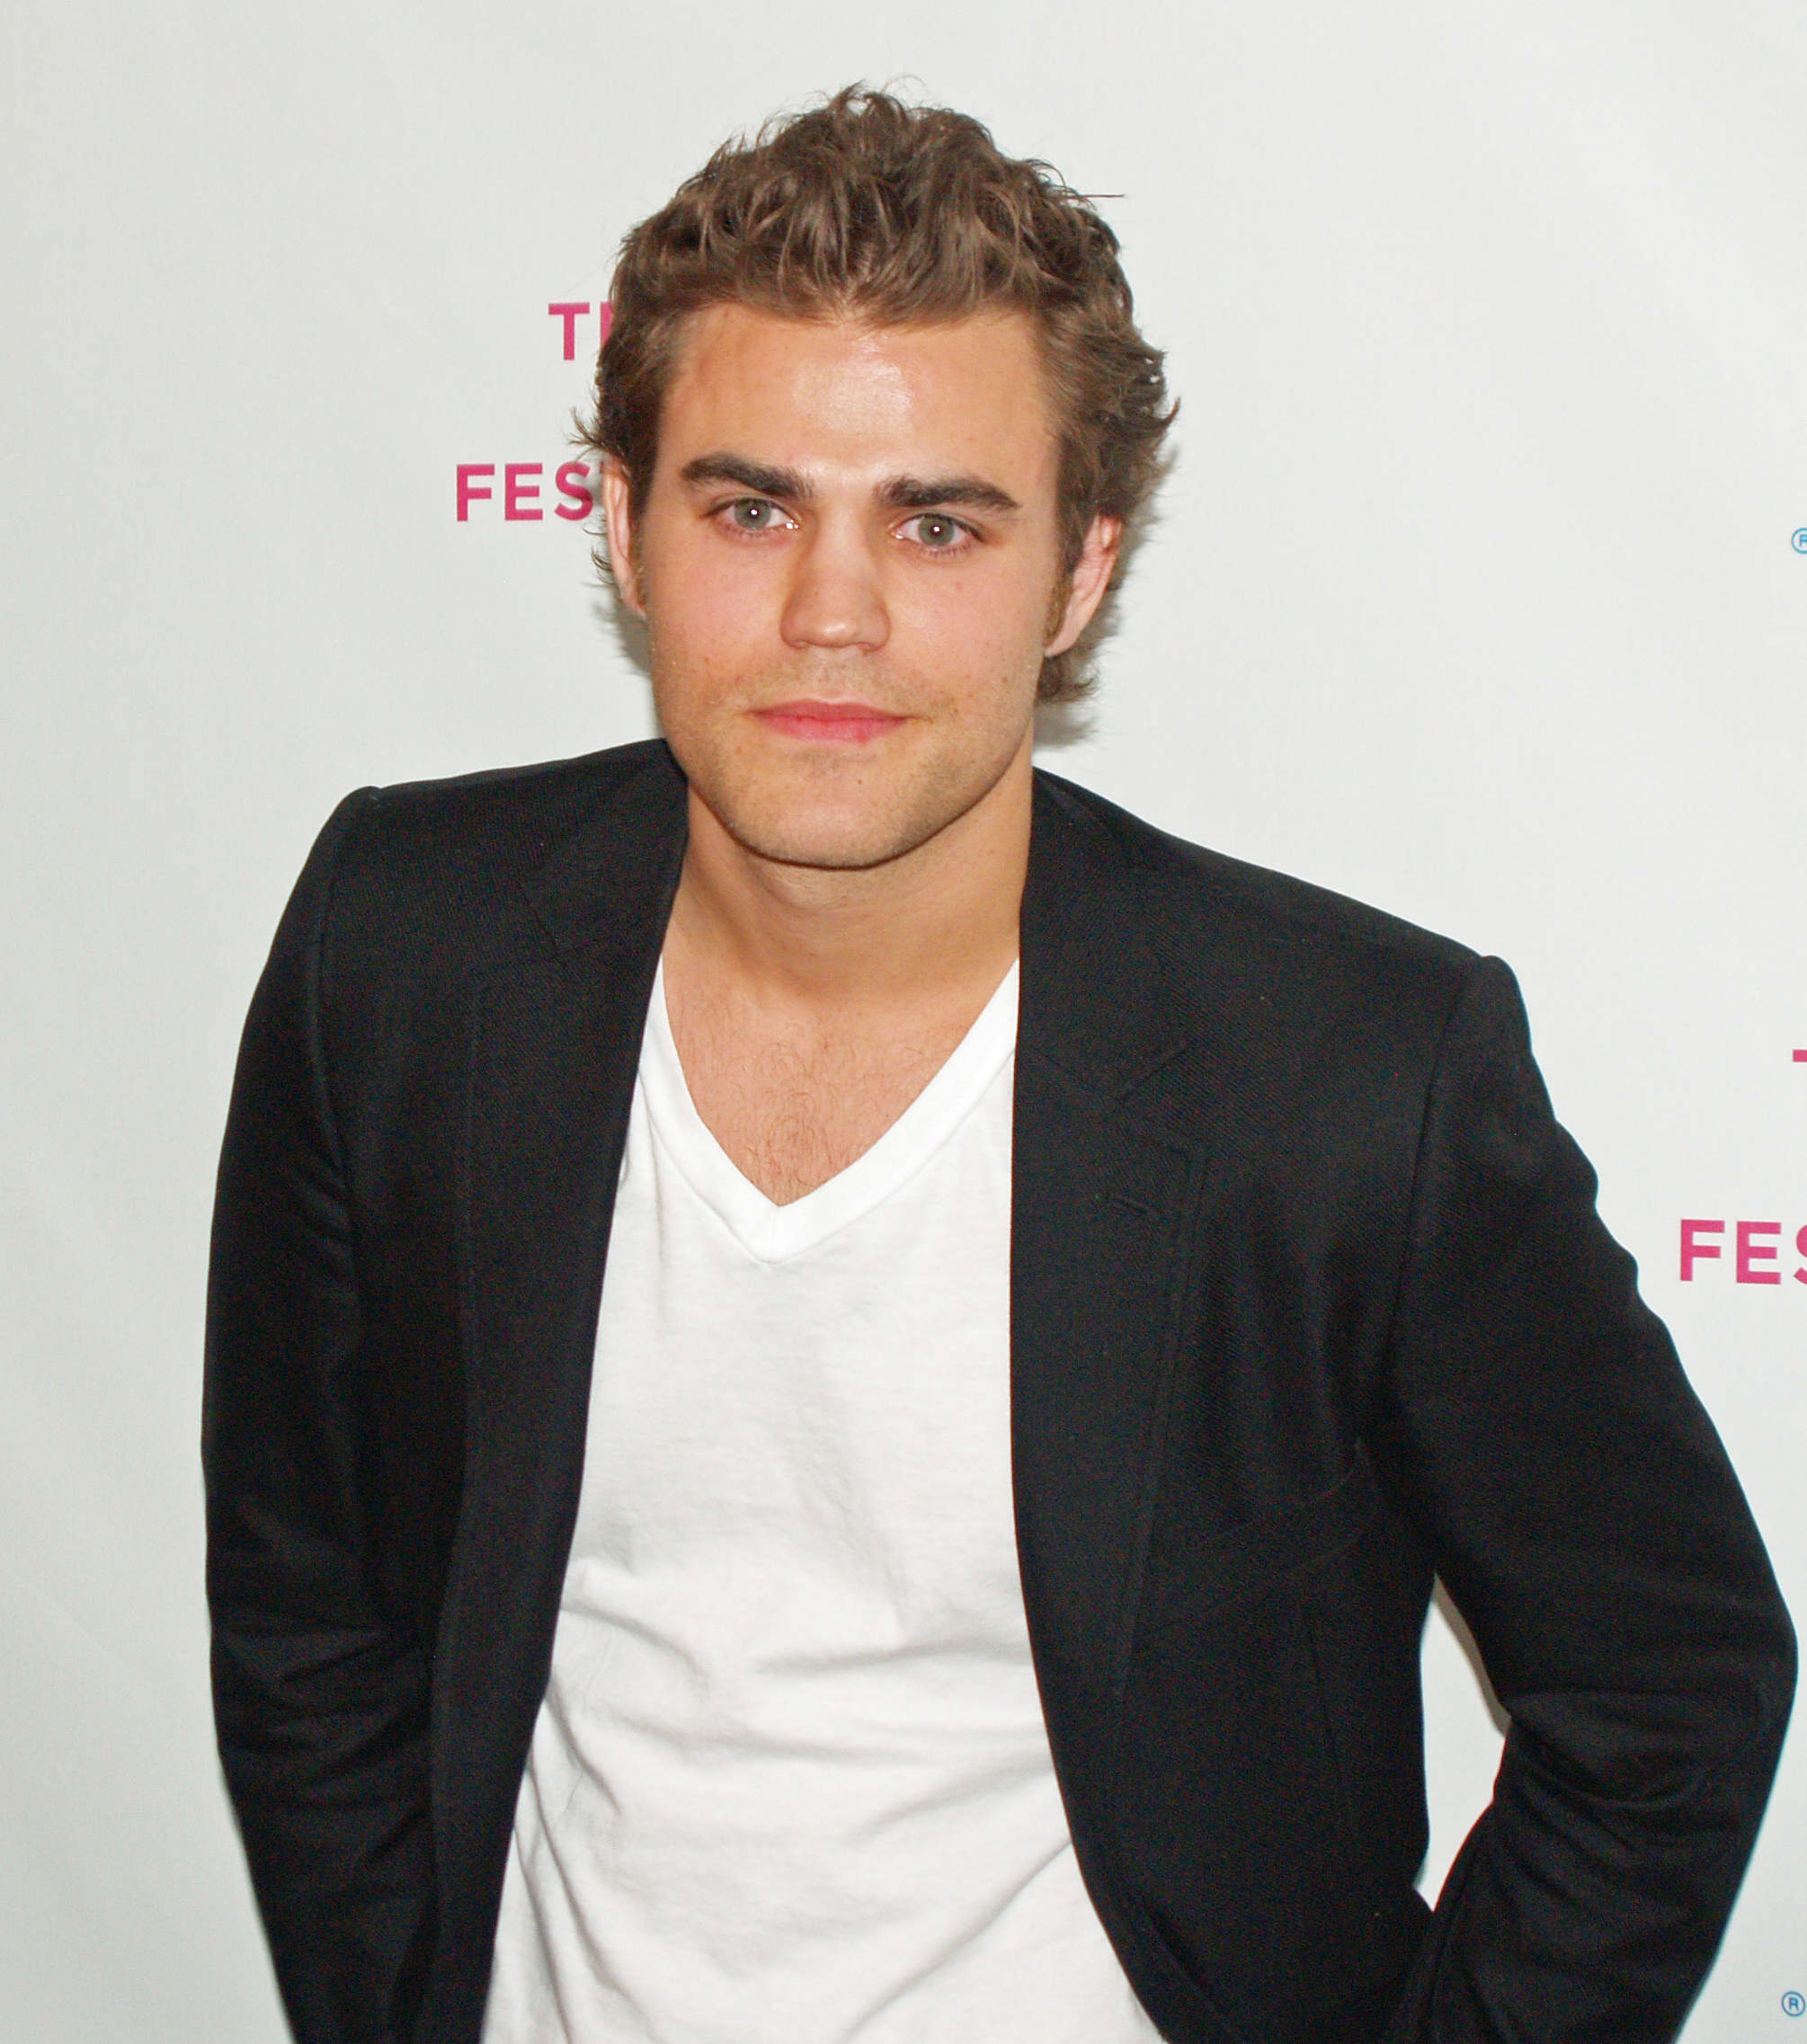 Paul Wesley - Wikipedia